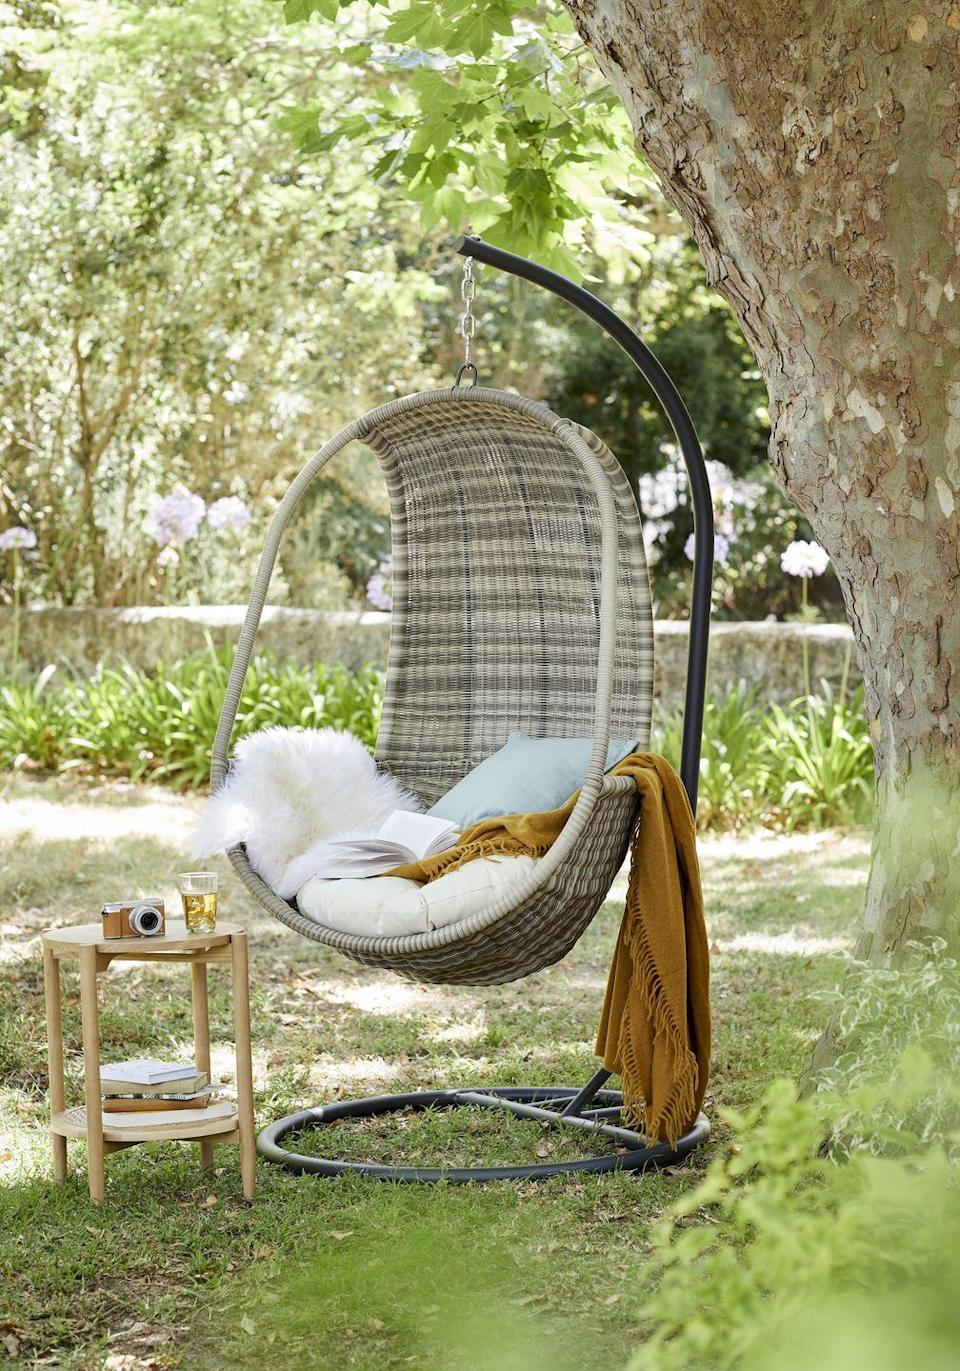 """<p>Egg chairs are all the rage this summer. As well as looking incredibly stylish in the garden, they're the perfect spot for gently swinging in the sunshine. Add a soft blanket for extra comfort. </p><p><a class=""""link rapid-noclick-resp"""" href=""""https://go.redirectingat.com?id=127X1599956&url=https%3A%2F%2Fwww.johnlewis.com%2Fjohn-lewis-partners-garden-dante-hanging-pod-chair%2Fp2067115&sref=https%3A%2F%2Fwww.redonline.co.uk%2Finteriors%2Fhomeware%2Fg36003381%2Fjohn-lewis-garden-collection-spring-summer%2F"""" rel=""""nofollow noopener"""" target=""""_blank"""" data-ylk=""""slk:SHOP NOW"""">SHOP NOW</a></p>"""